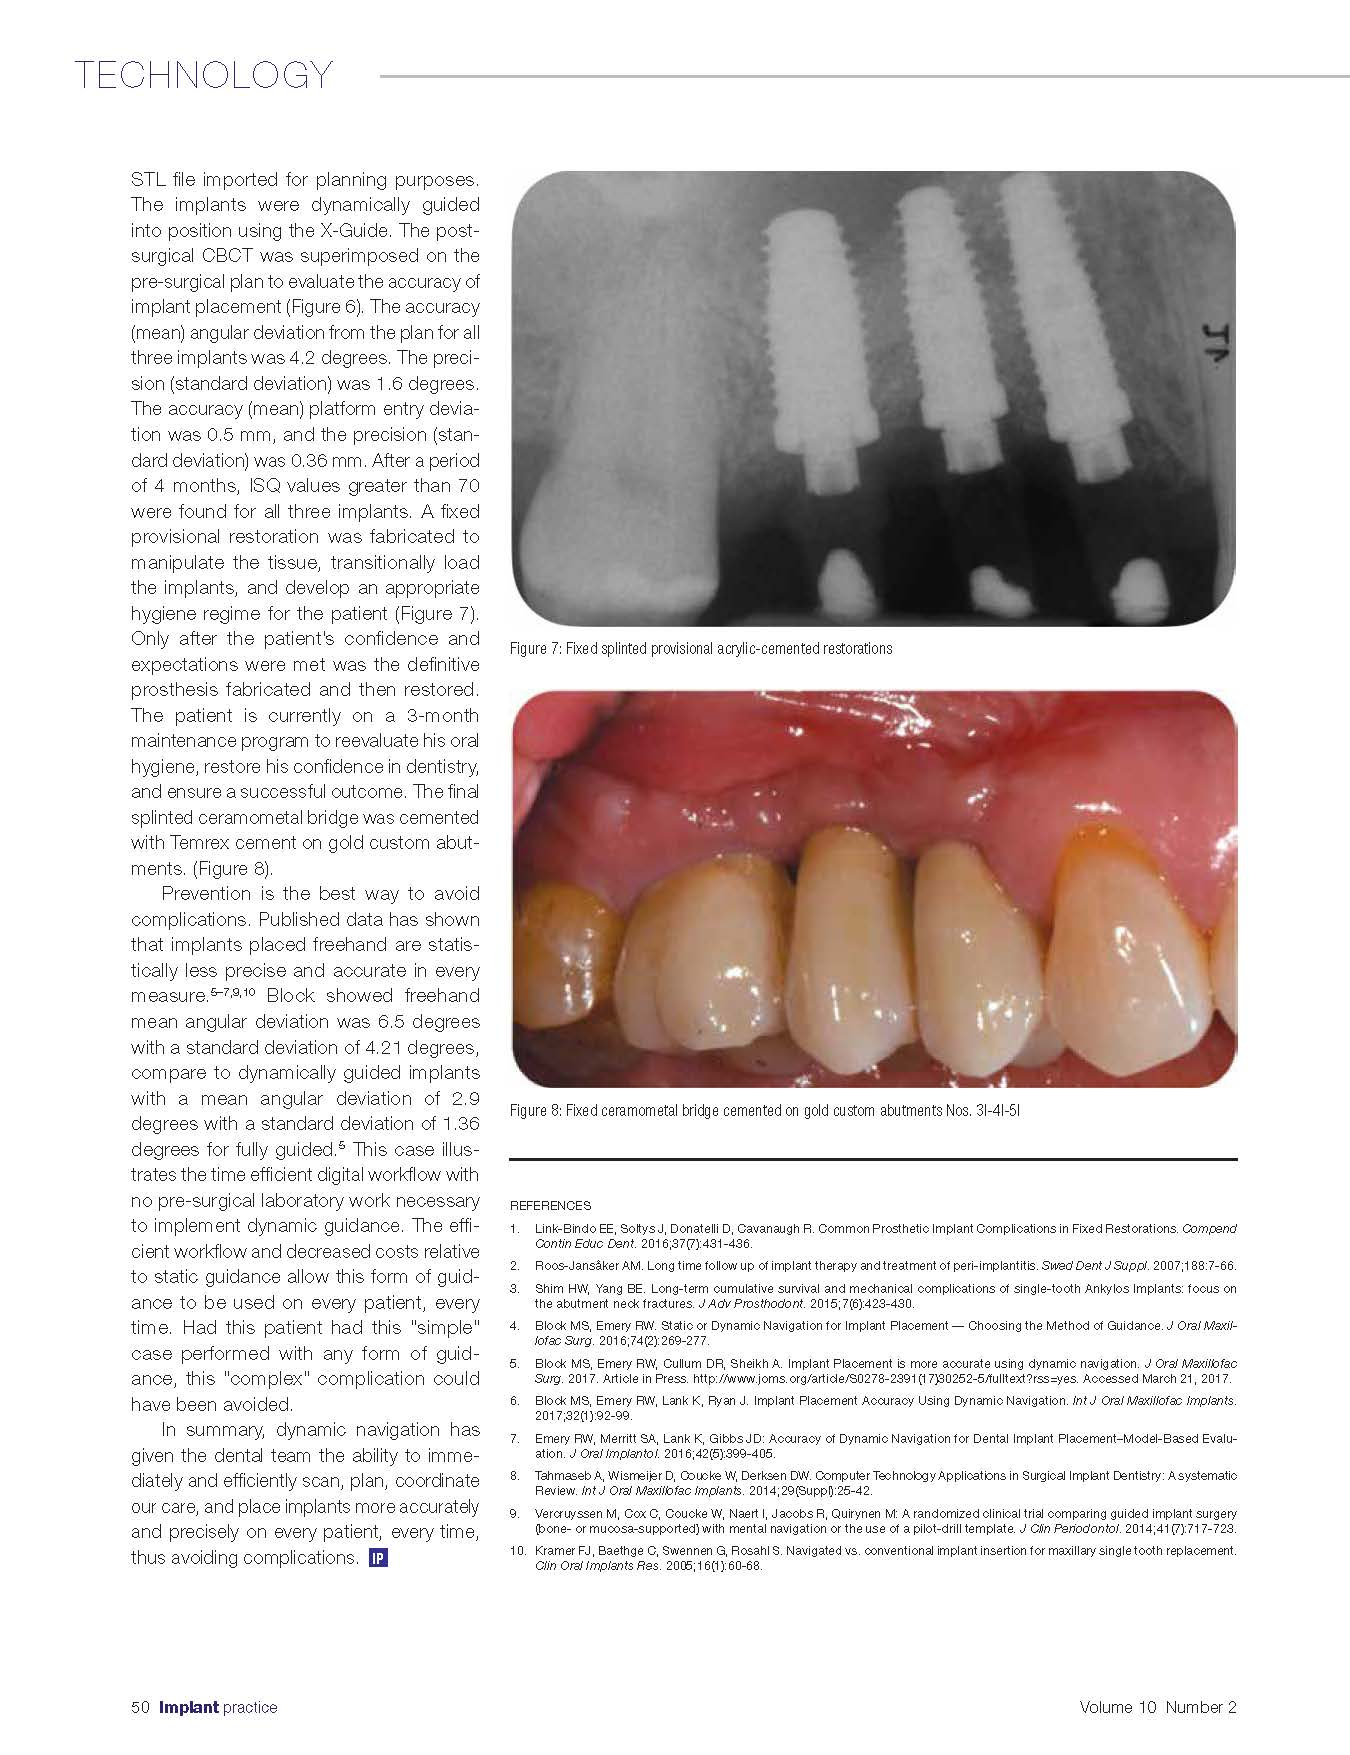 Navigation-To-Prevent-Implant-ComplicationsIPUSQ217_Page_3.jpg